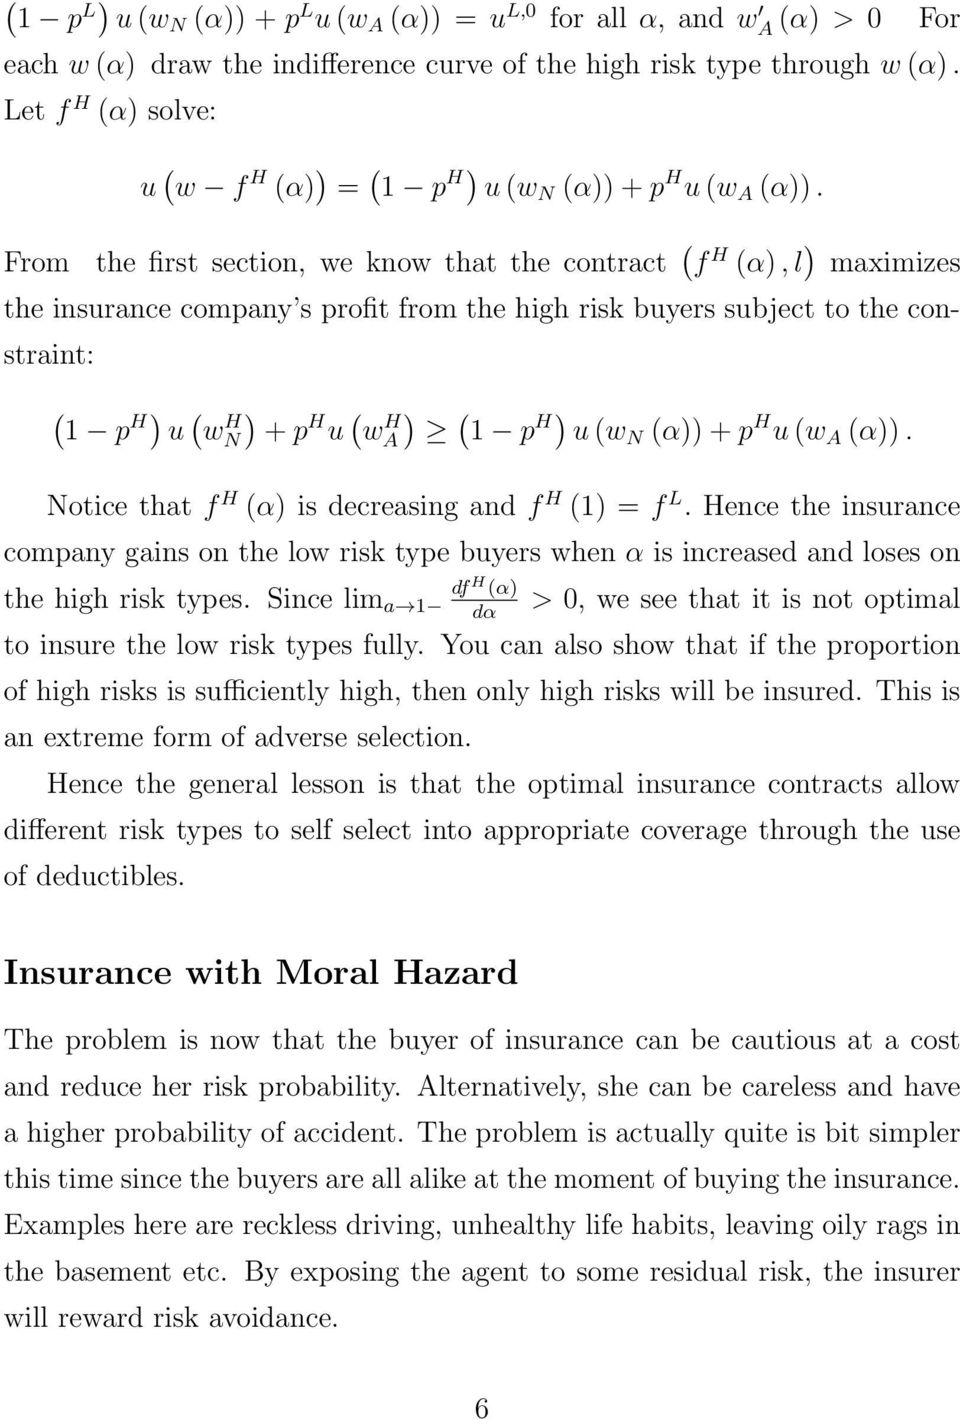 the first section, we know that the contract ( f (α), l ) maximizes the insurance company s profit from the high risk buyers subject to the constraint: ( ) 1 p + p ( w ) A 1 p u (w N (α)) + p u (w A